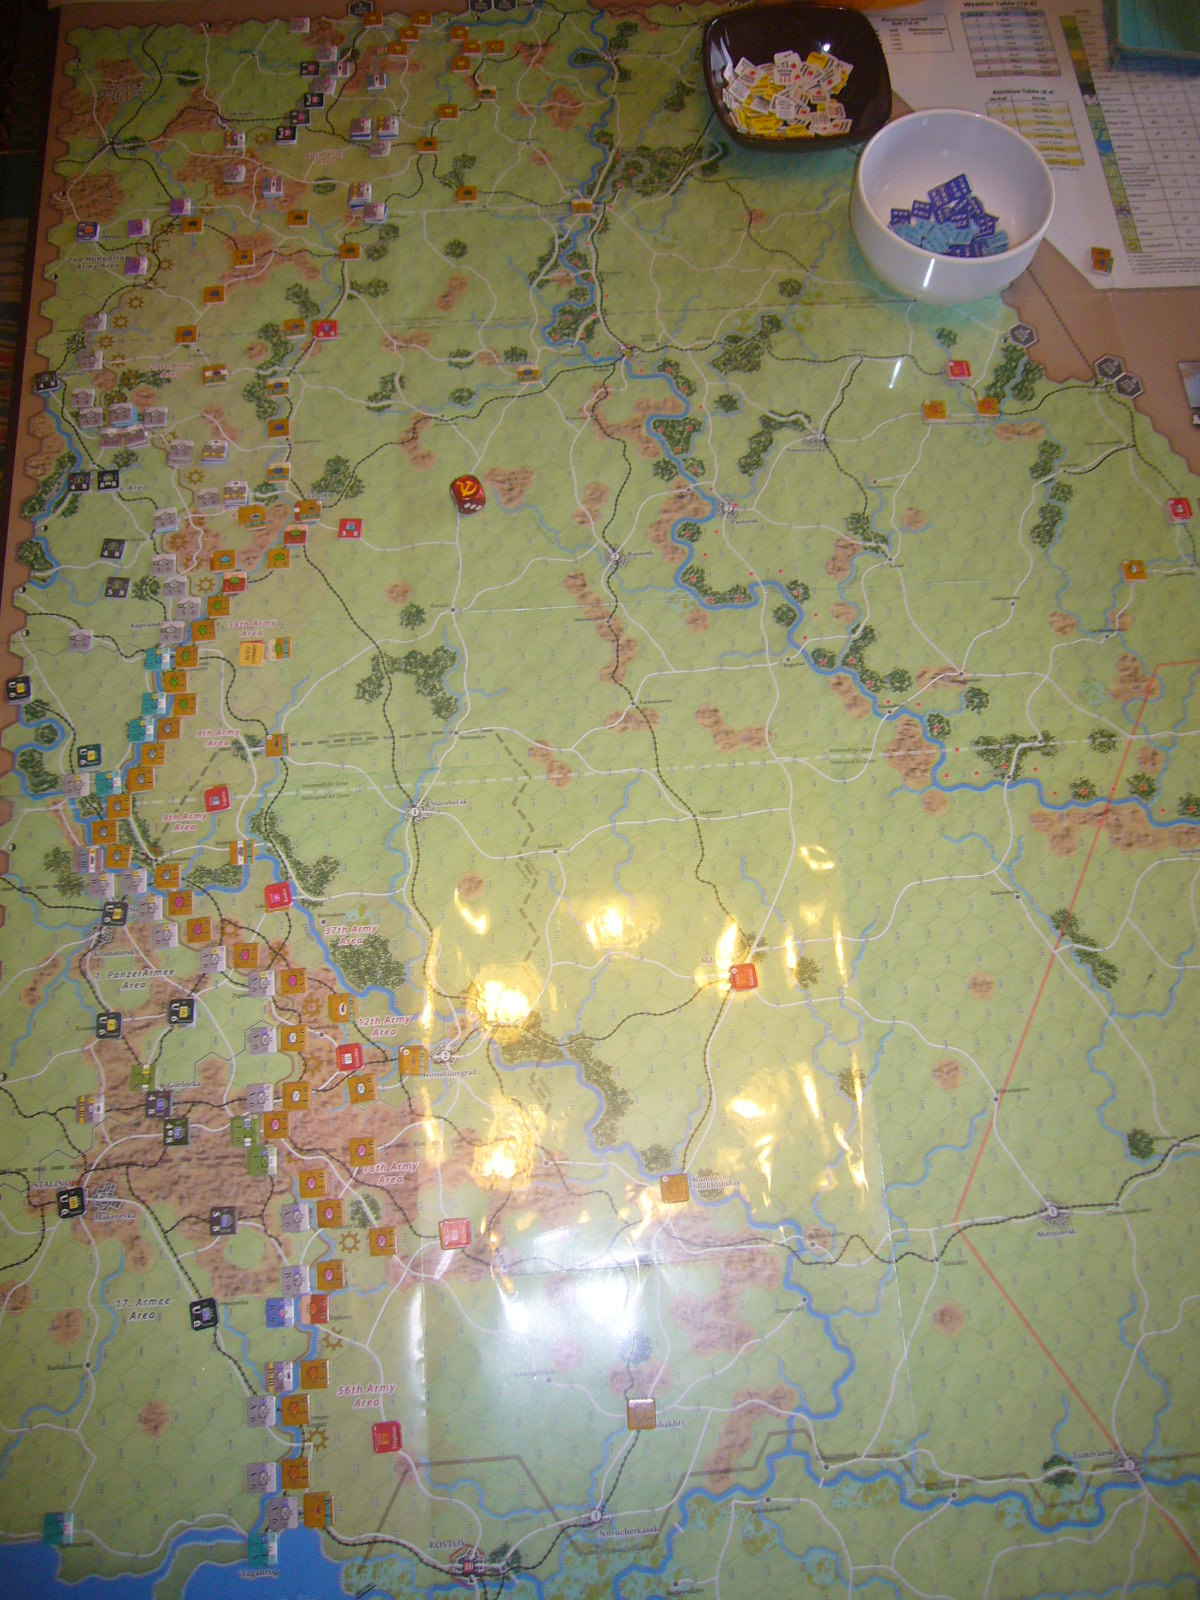 (Compass)FALL BLAU: Army Group South, June to December 1942 青作戦:史実の7月キャンペーンお試し5人戦❶_b0173672_16240157.jpg